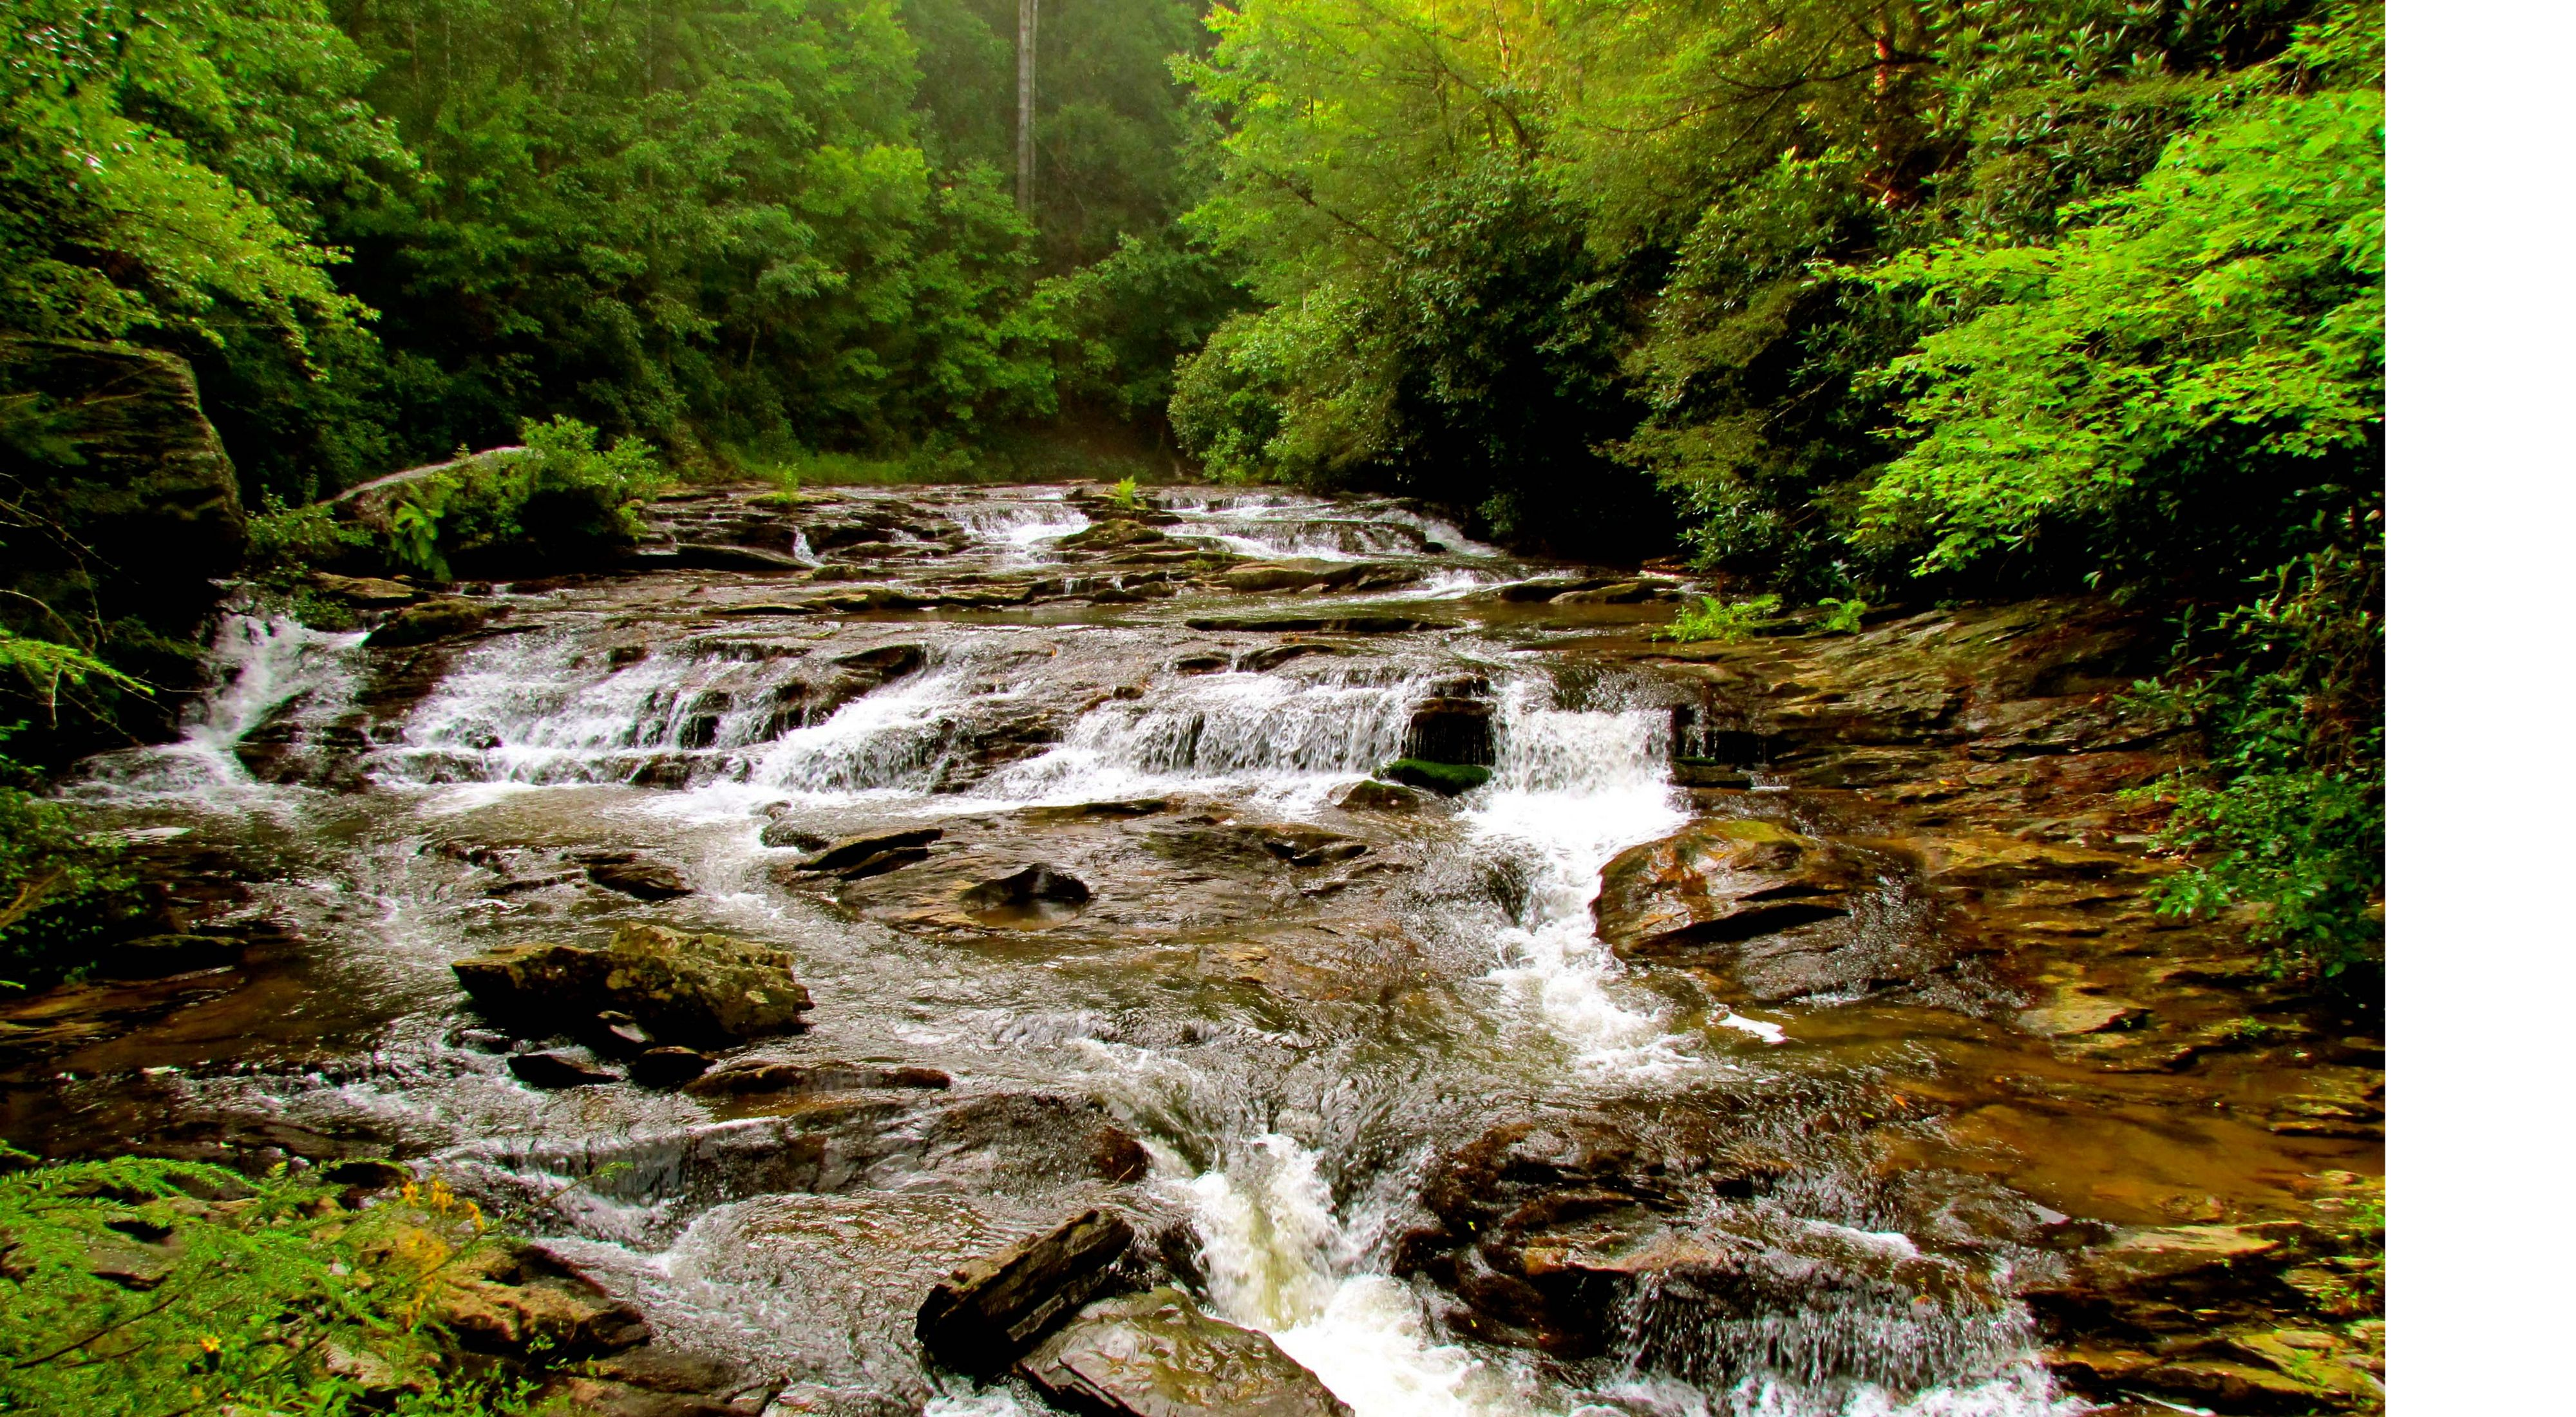 Water cascades through the dense wilderness in the Chattahoochee National Forest in Georgia.